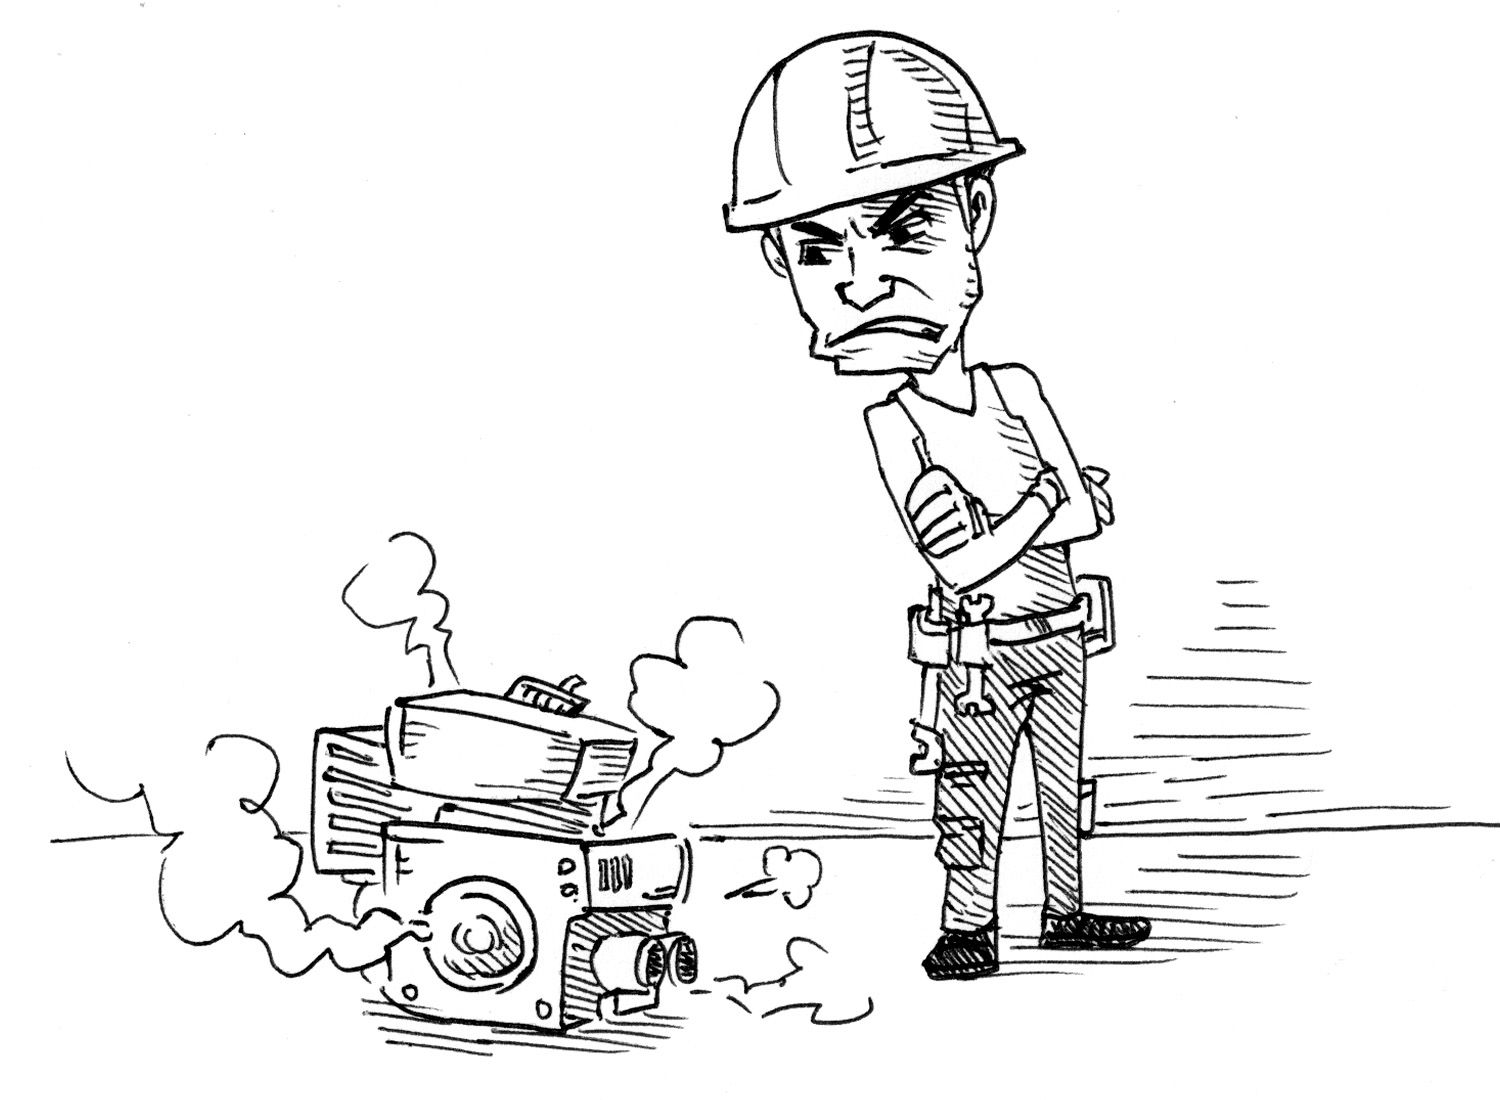 A bad workman blames his tools Blame, Picture prompts, Bad